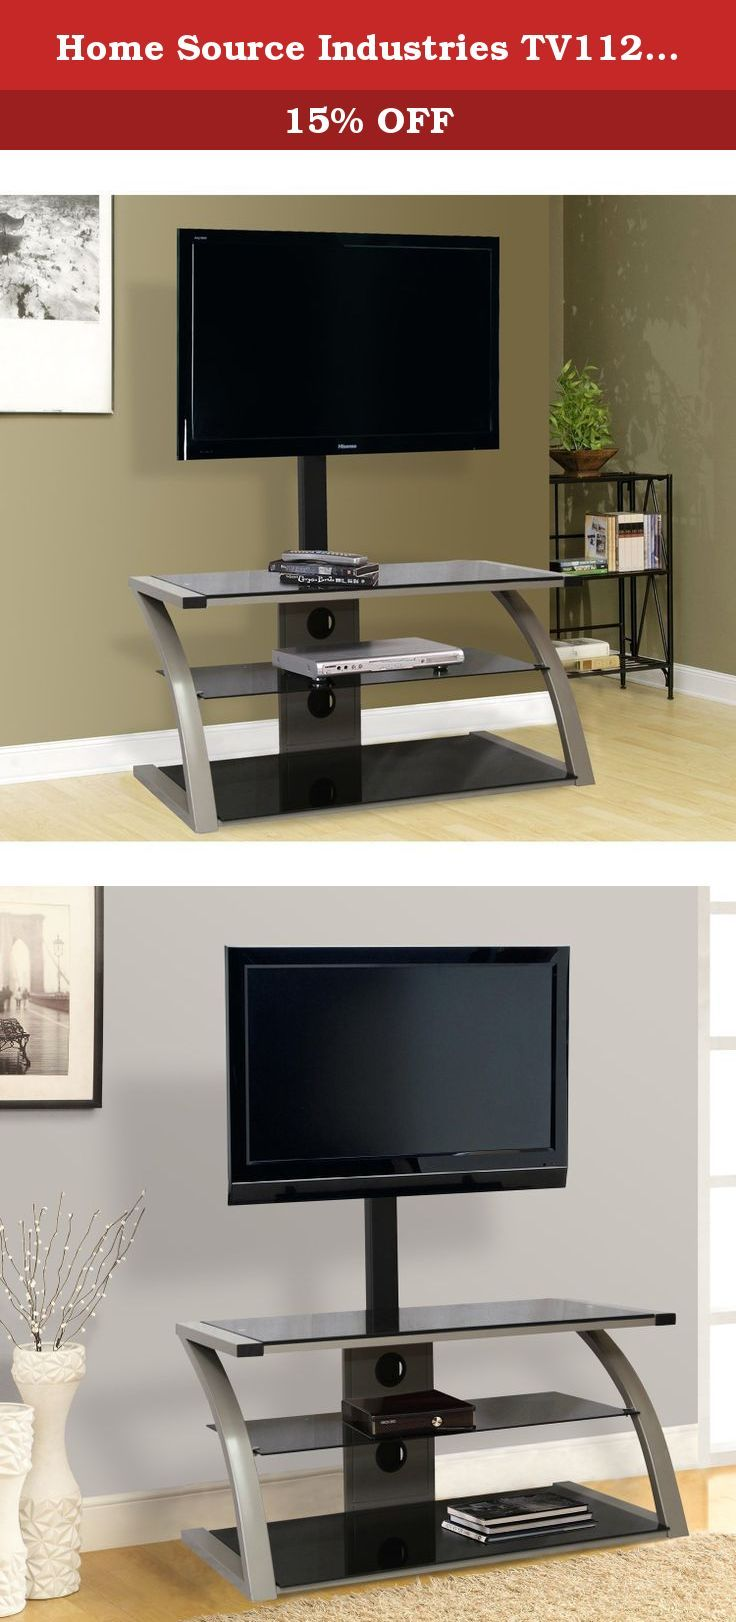 """Home Source Industries TV11242 Modern TV Stand with Mount and Shelving for Components, Black/Chrome. Display your flat-panel plasma or LCD television in style with this TV stand. Designed to accommodate televisions up to 55"""", the TV stand features a sharp angular design and distinctive silver accent sides. The three shelving units complement a modern home decor, and they also allow for the storage and display of numerous entertainment accessories."""